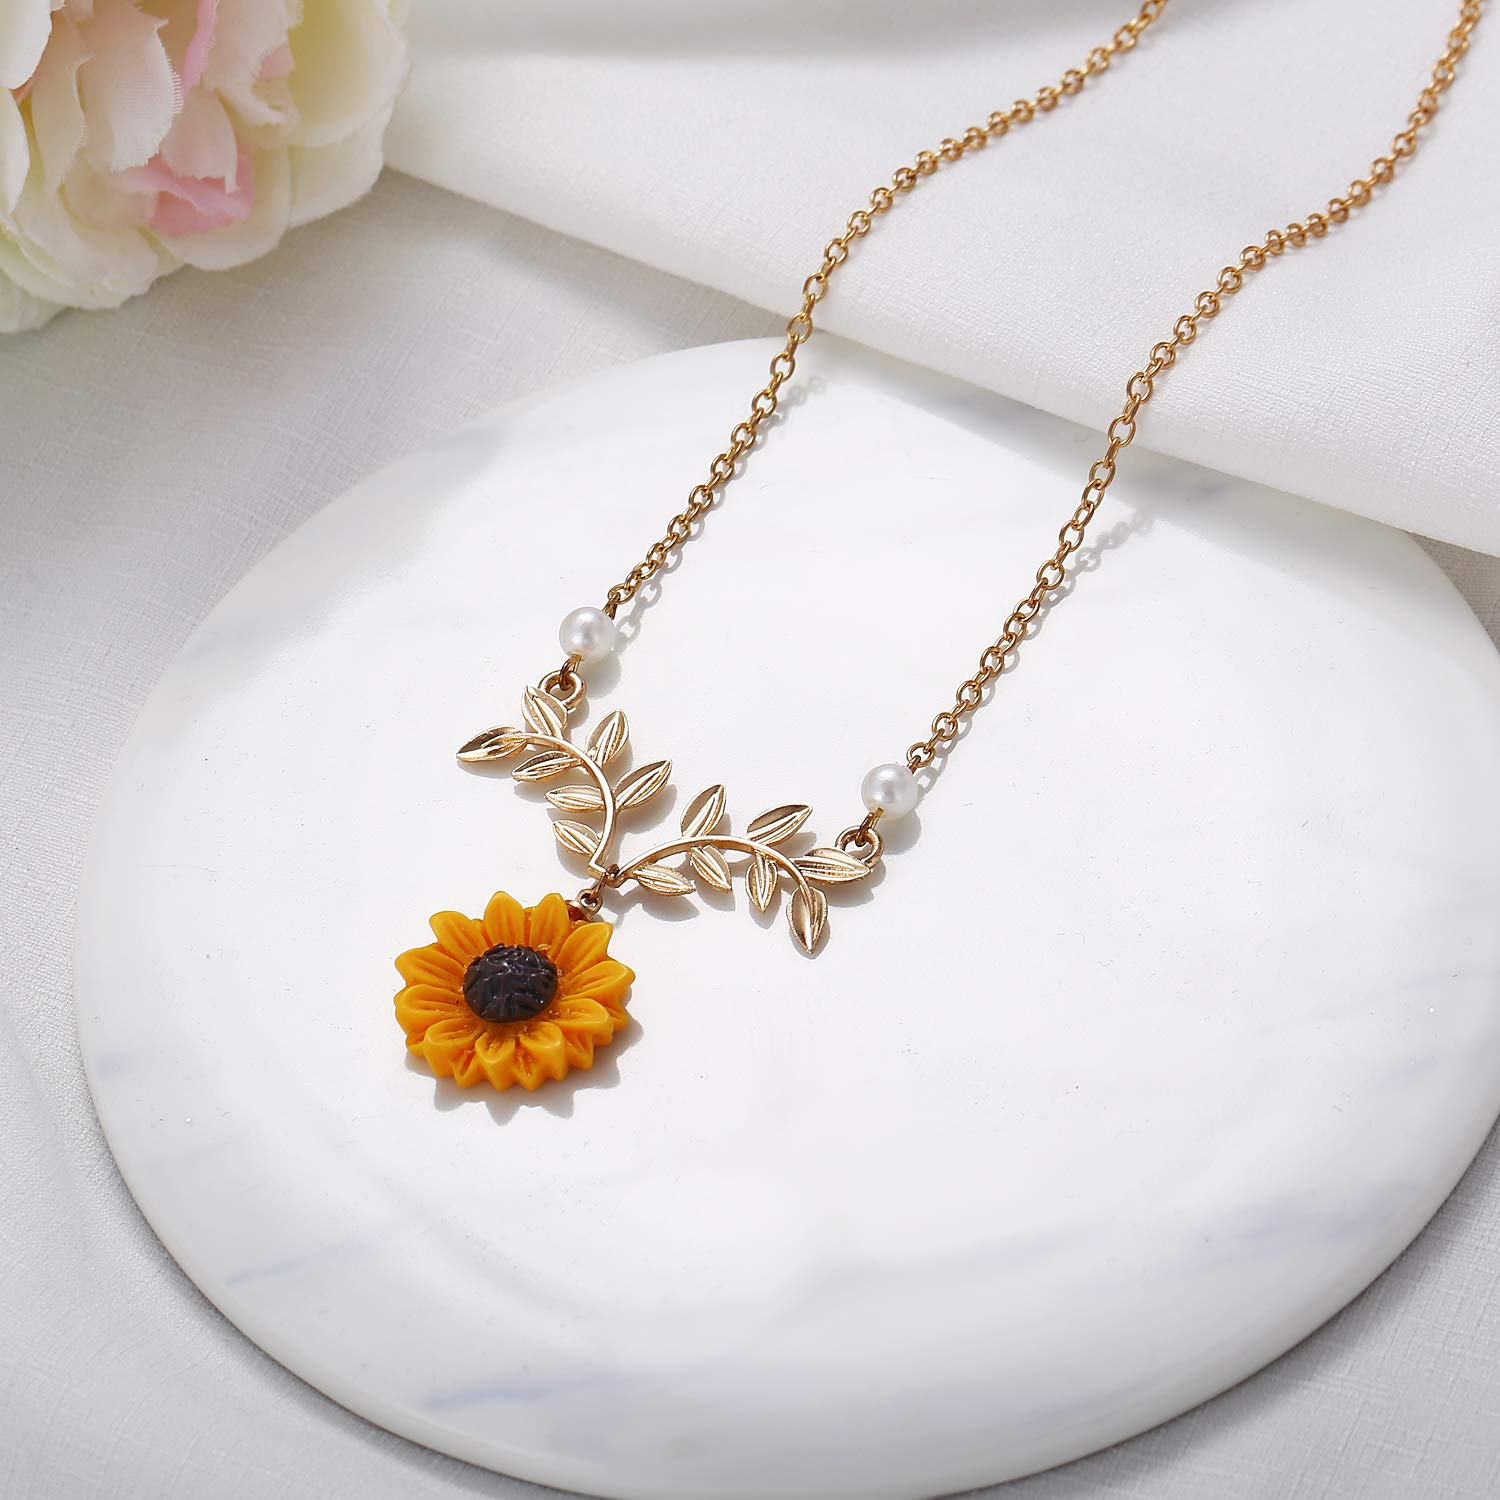 a71d8c351f Oscenlife Sunflower Pearl Leaf Chain Resin Boho Handmade Drop Pendant  Choker Necklace Plated-in Pendants from Jewelry & Accessories on  Aliexpress.com ...